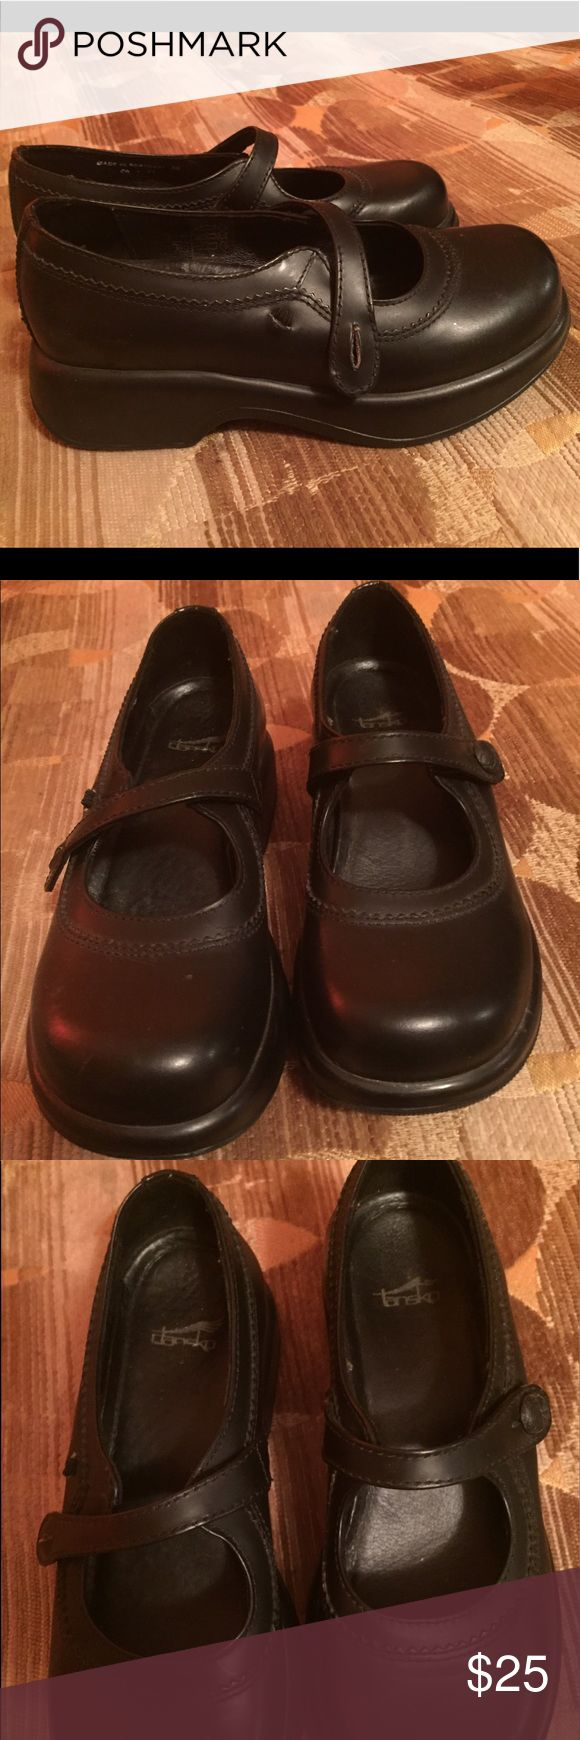 Dansko Mary Jane Shoes 6.5 Dansko black Mary Jane shoes. Gently worn  *missing button on right shoe* hardly worn like new size 6.5 Dansko Shoes Mules & Clogs